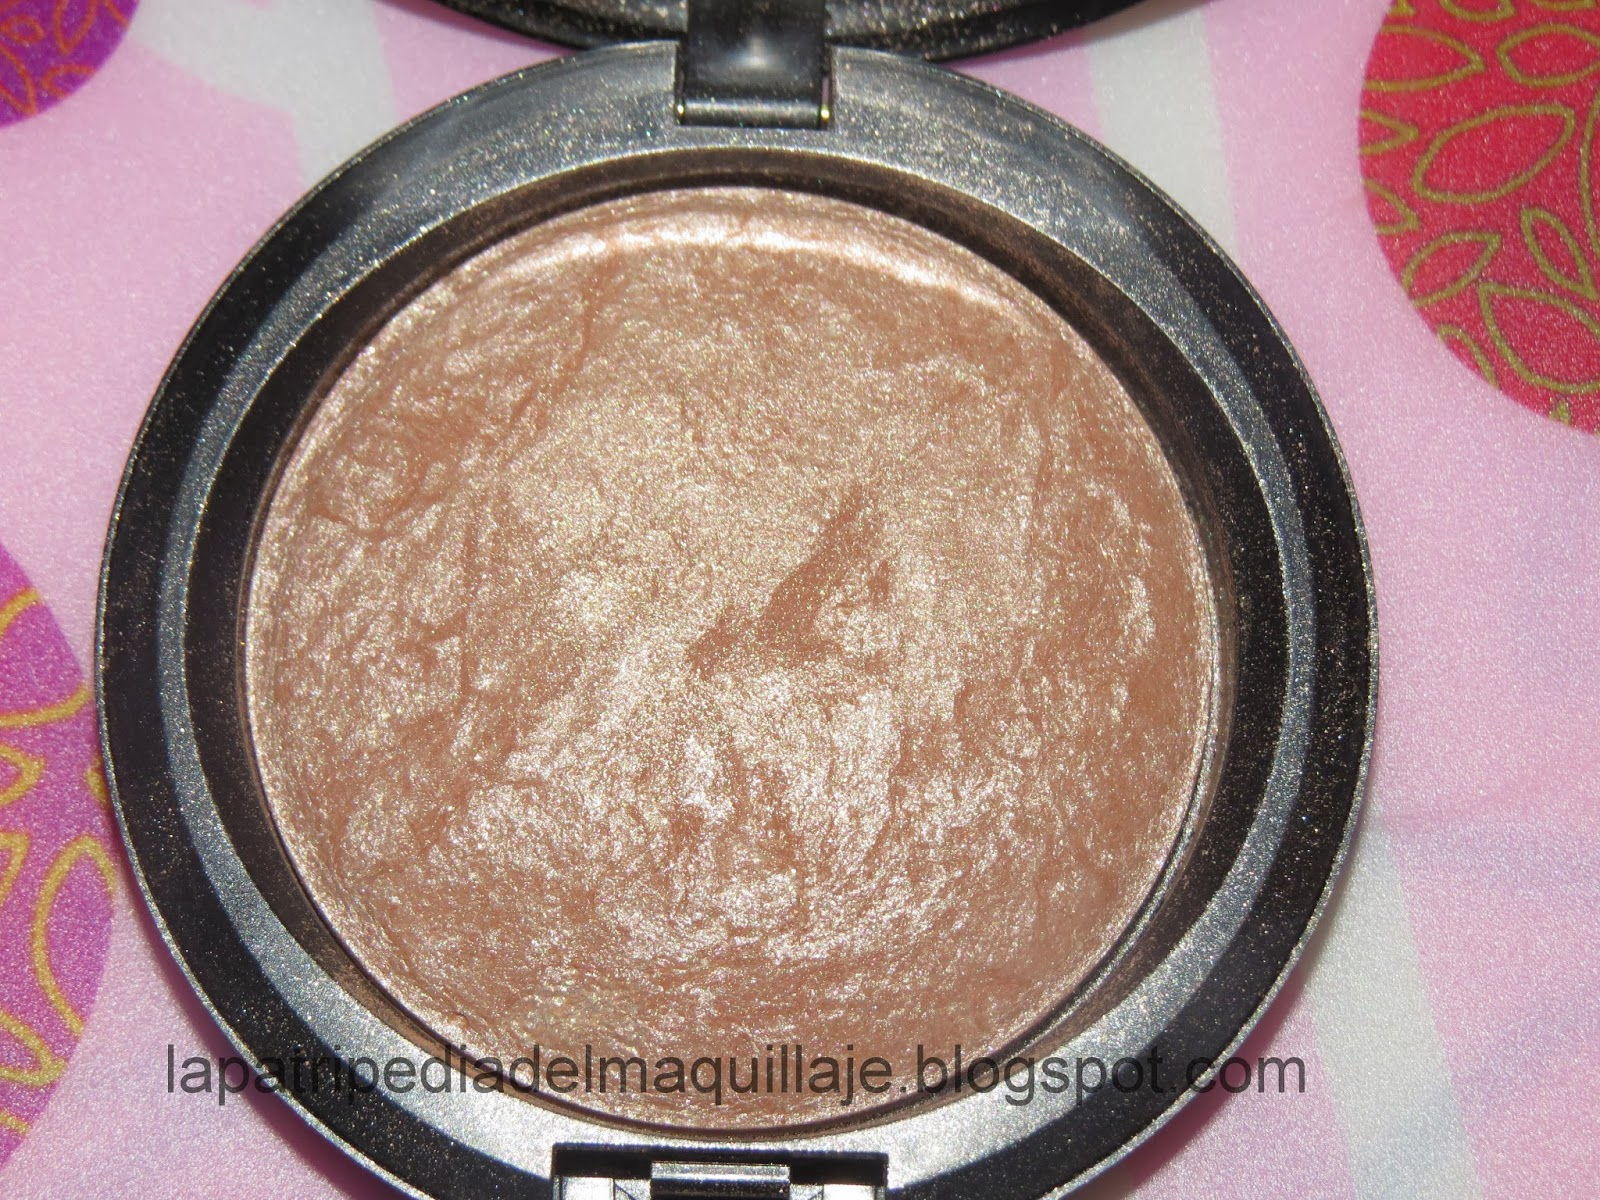 Iluminadores Mac Lo Necesitas Iluminador Soft And Gentle De Mac La